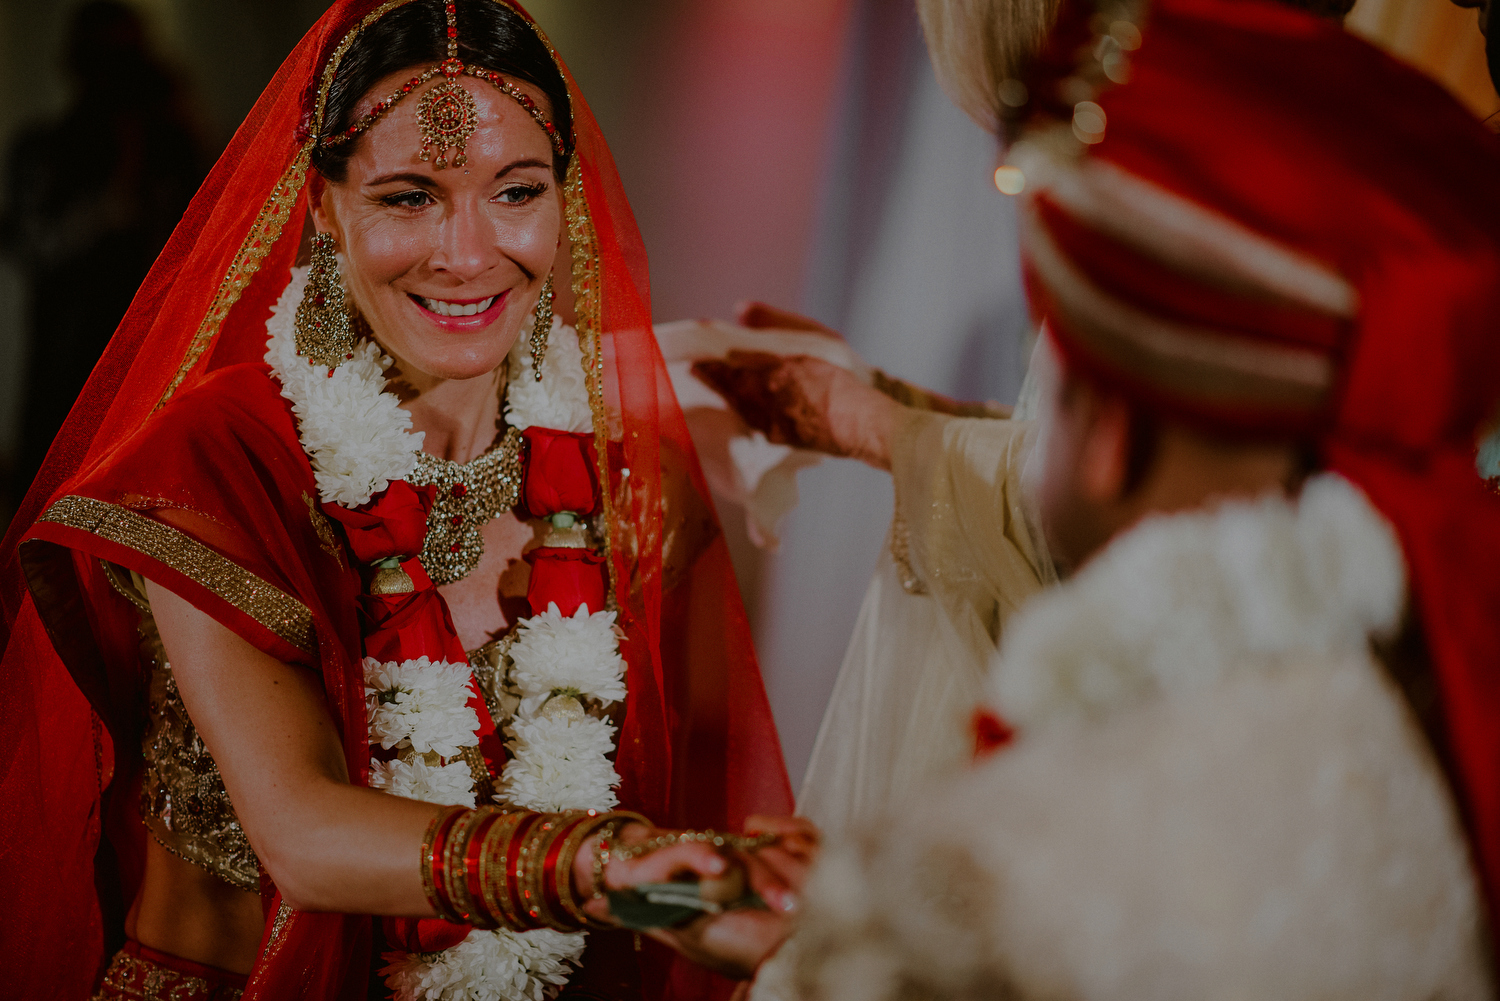 bride looks at groom during moment in indian wedding ceremony